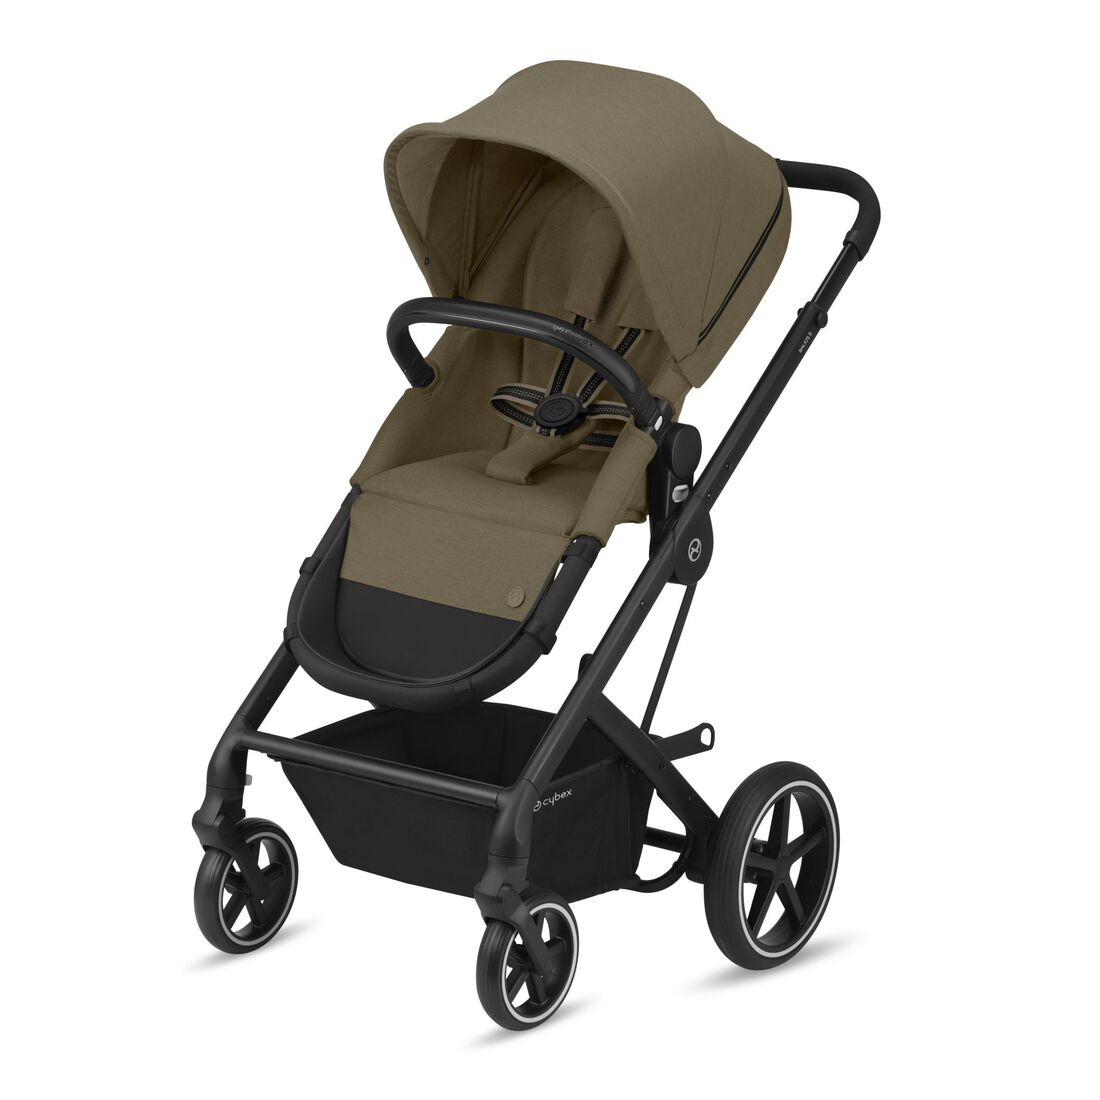 CYBEX Balios S 2-in-1 - Classic Beige in Classic Beige large image number 1